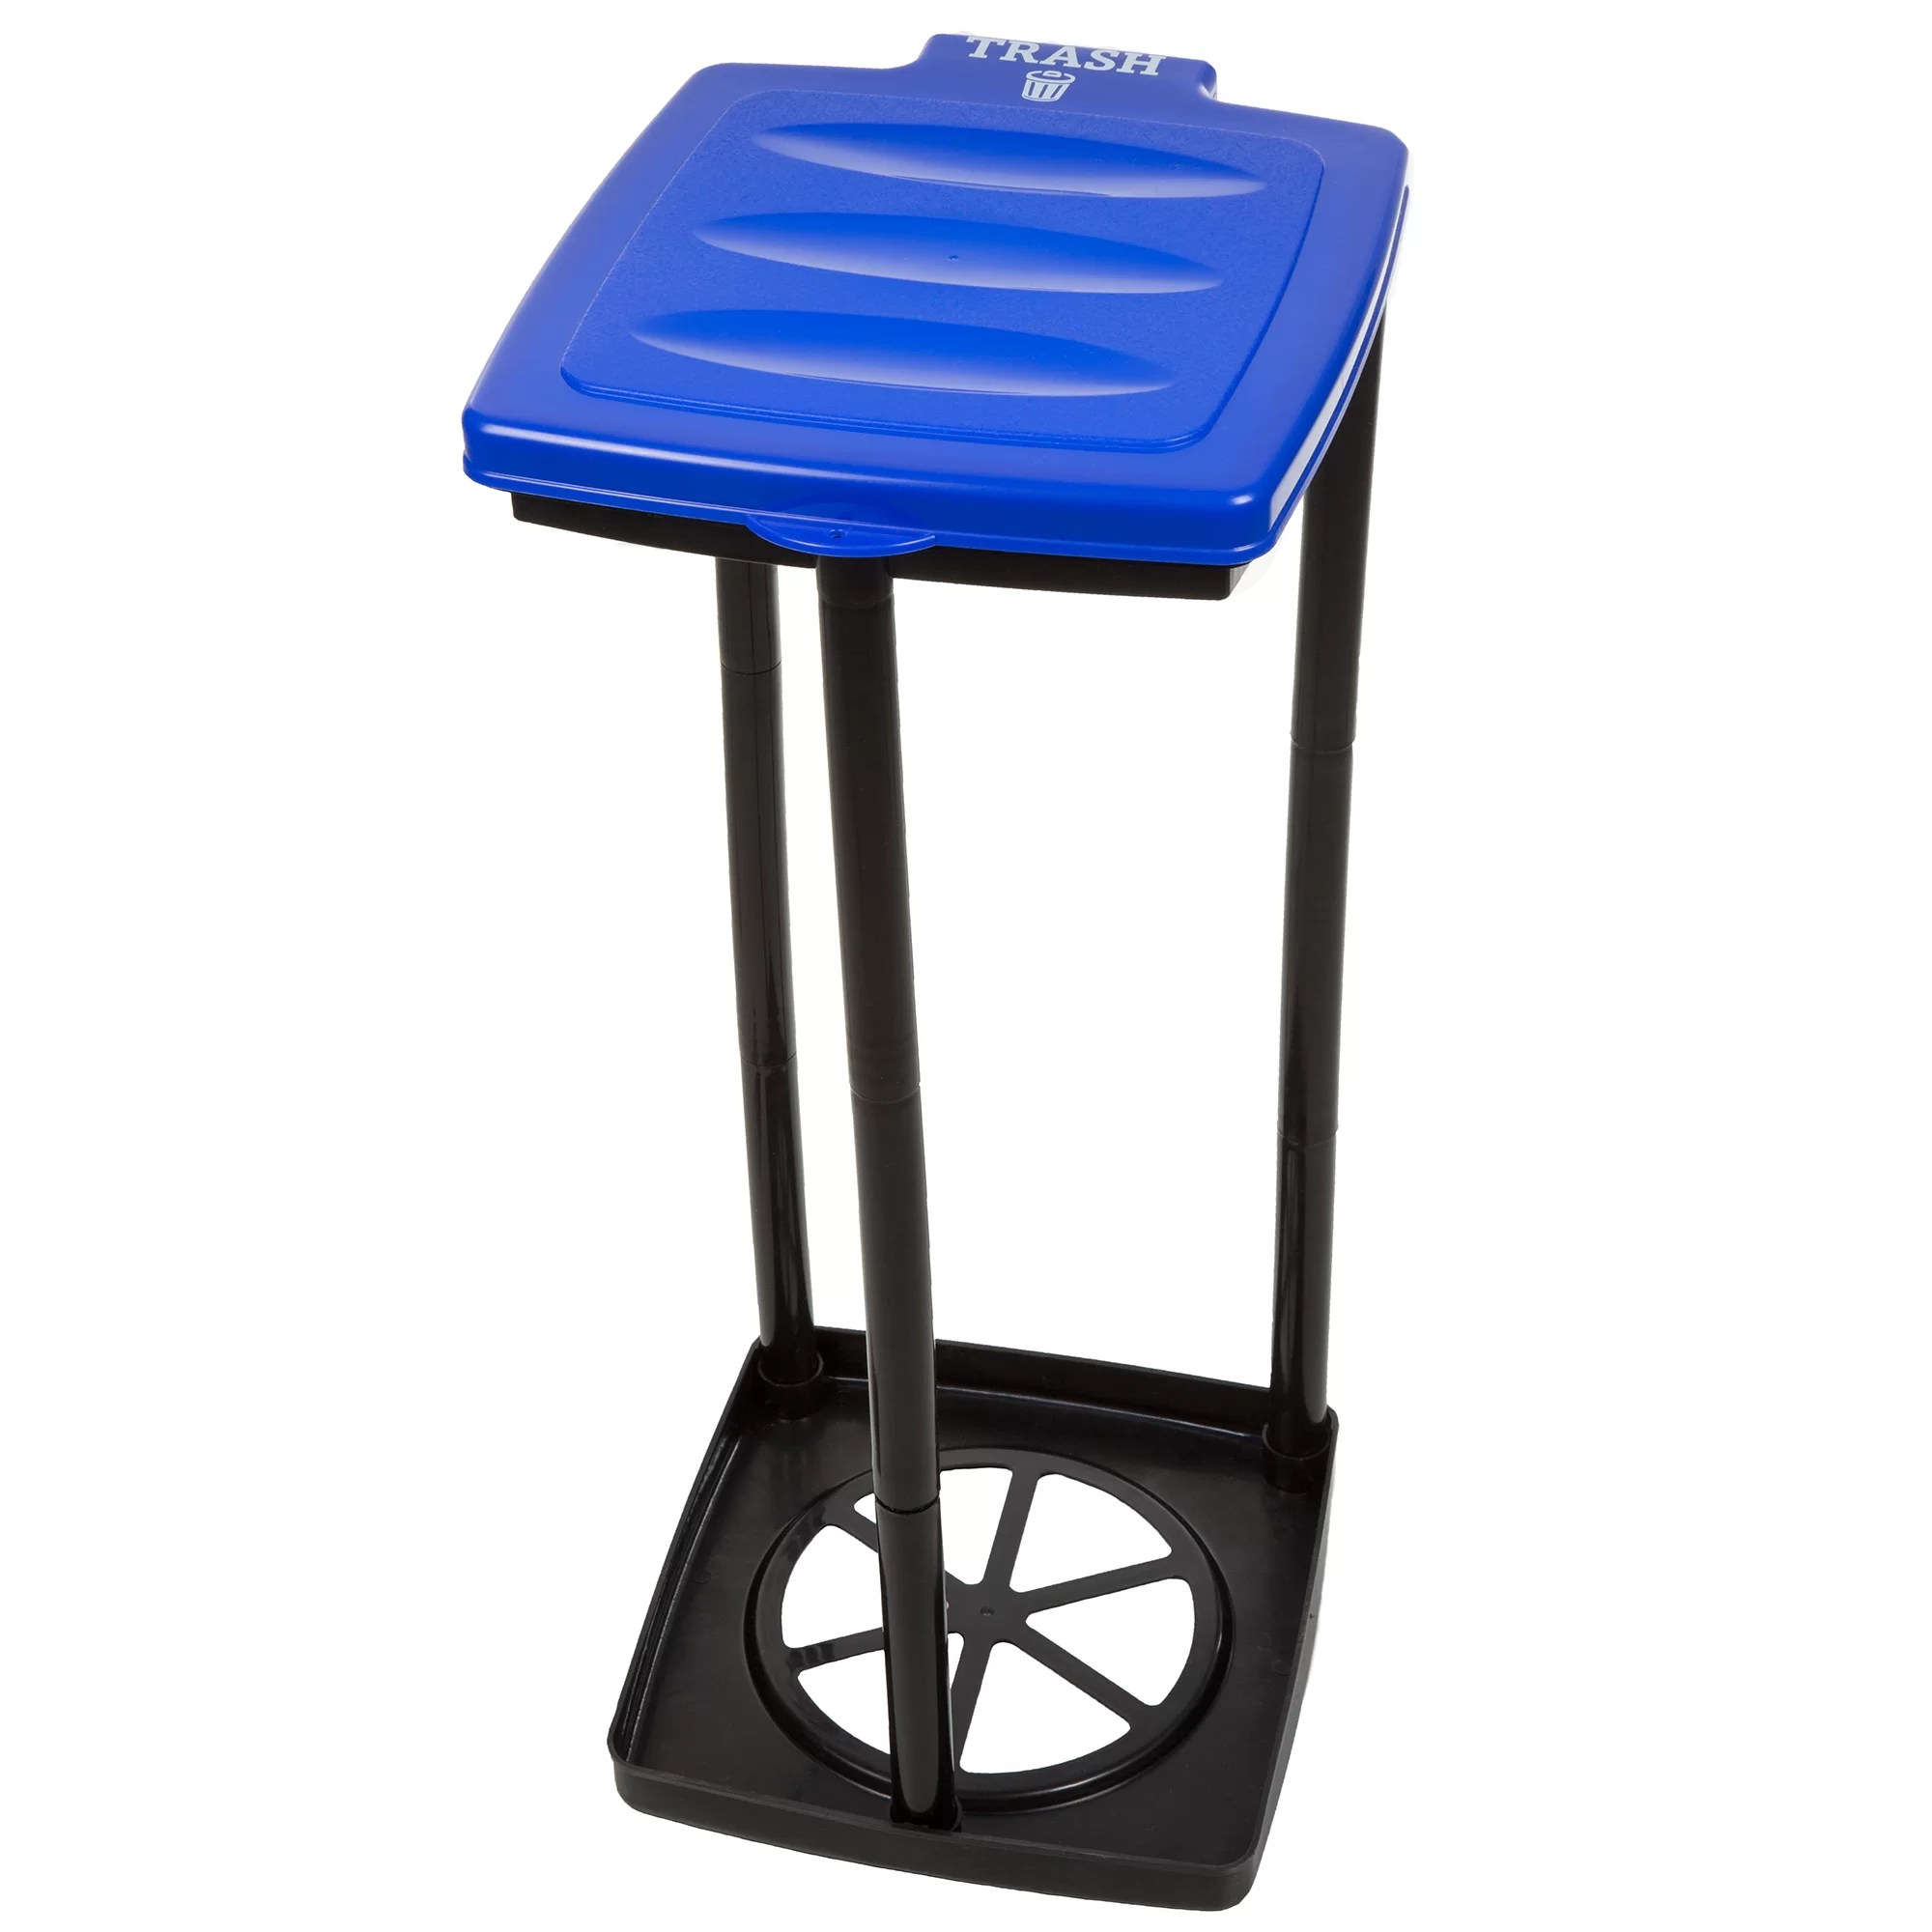 Collapsible Trash Cans Wakeman Portable Trash Bag Holder 13 Gallon Plastic Trash